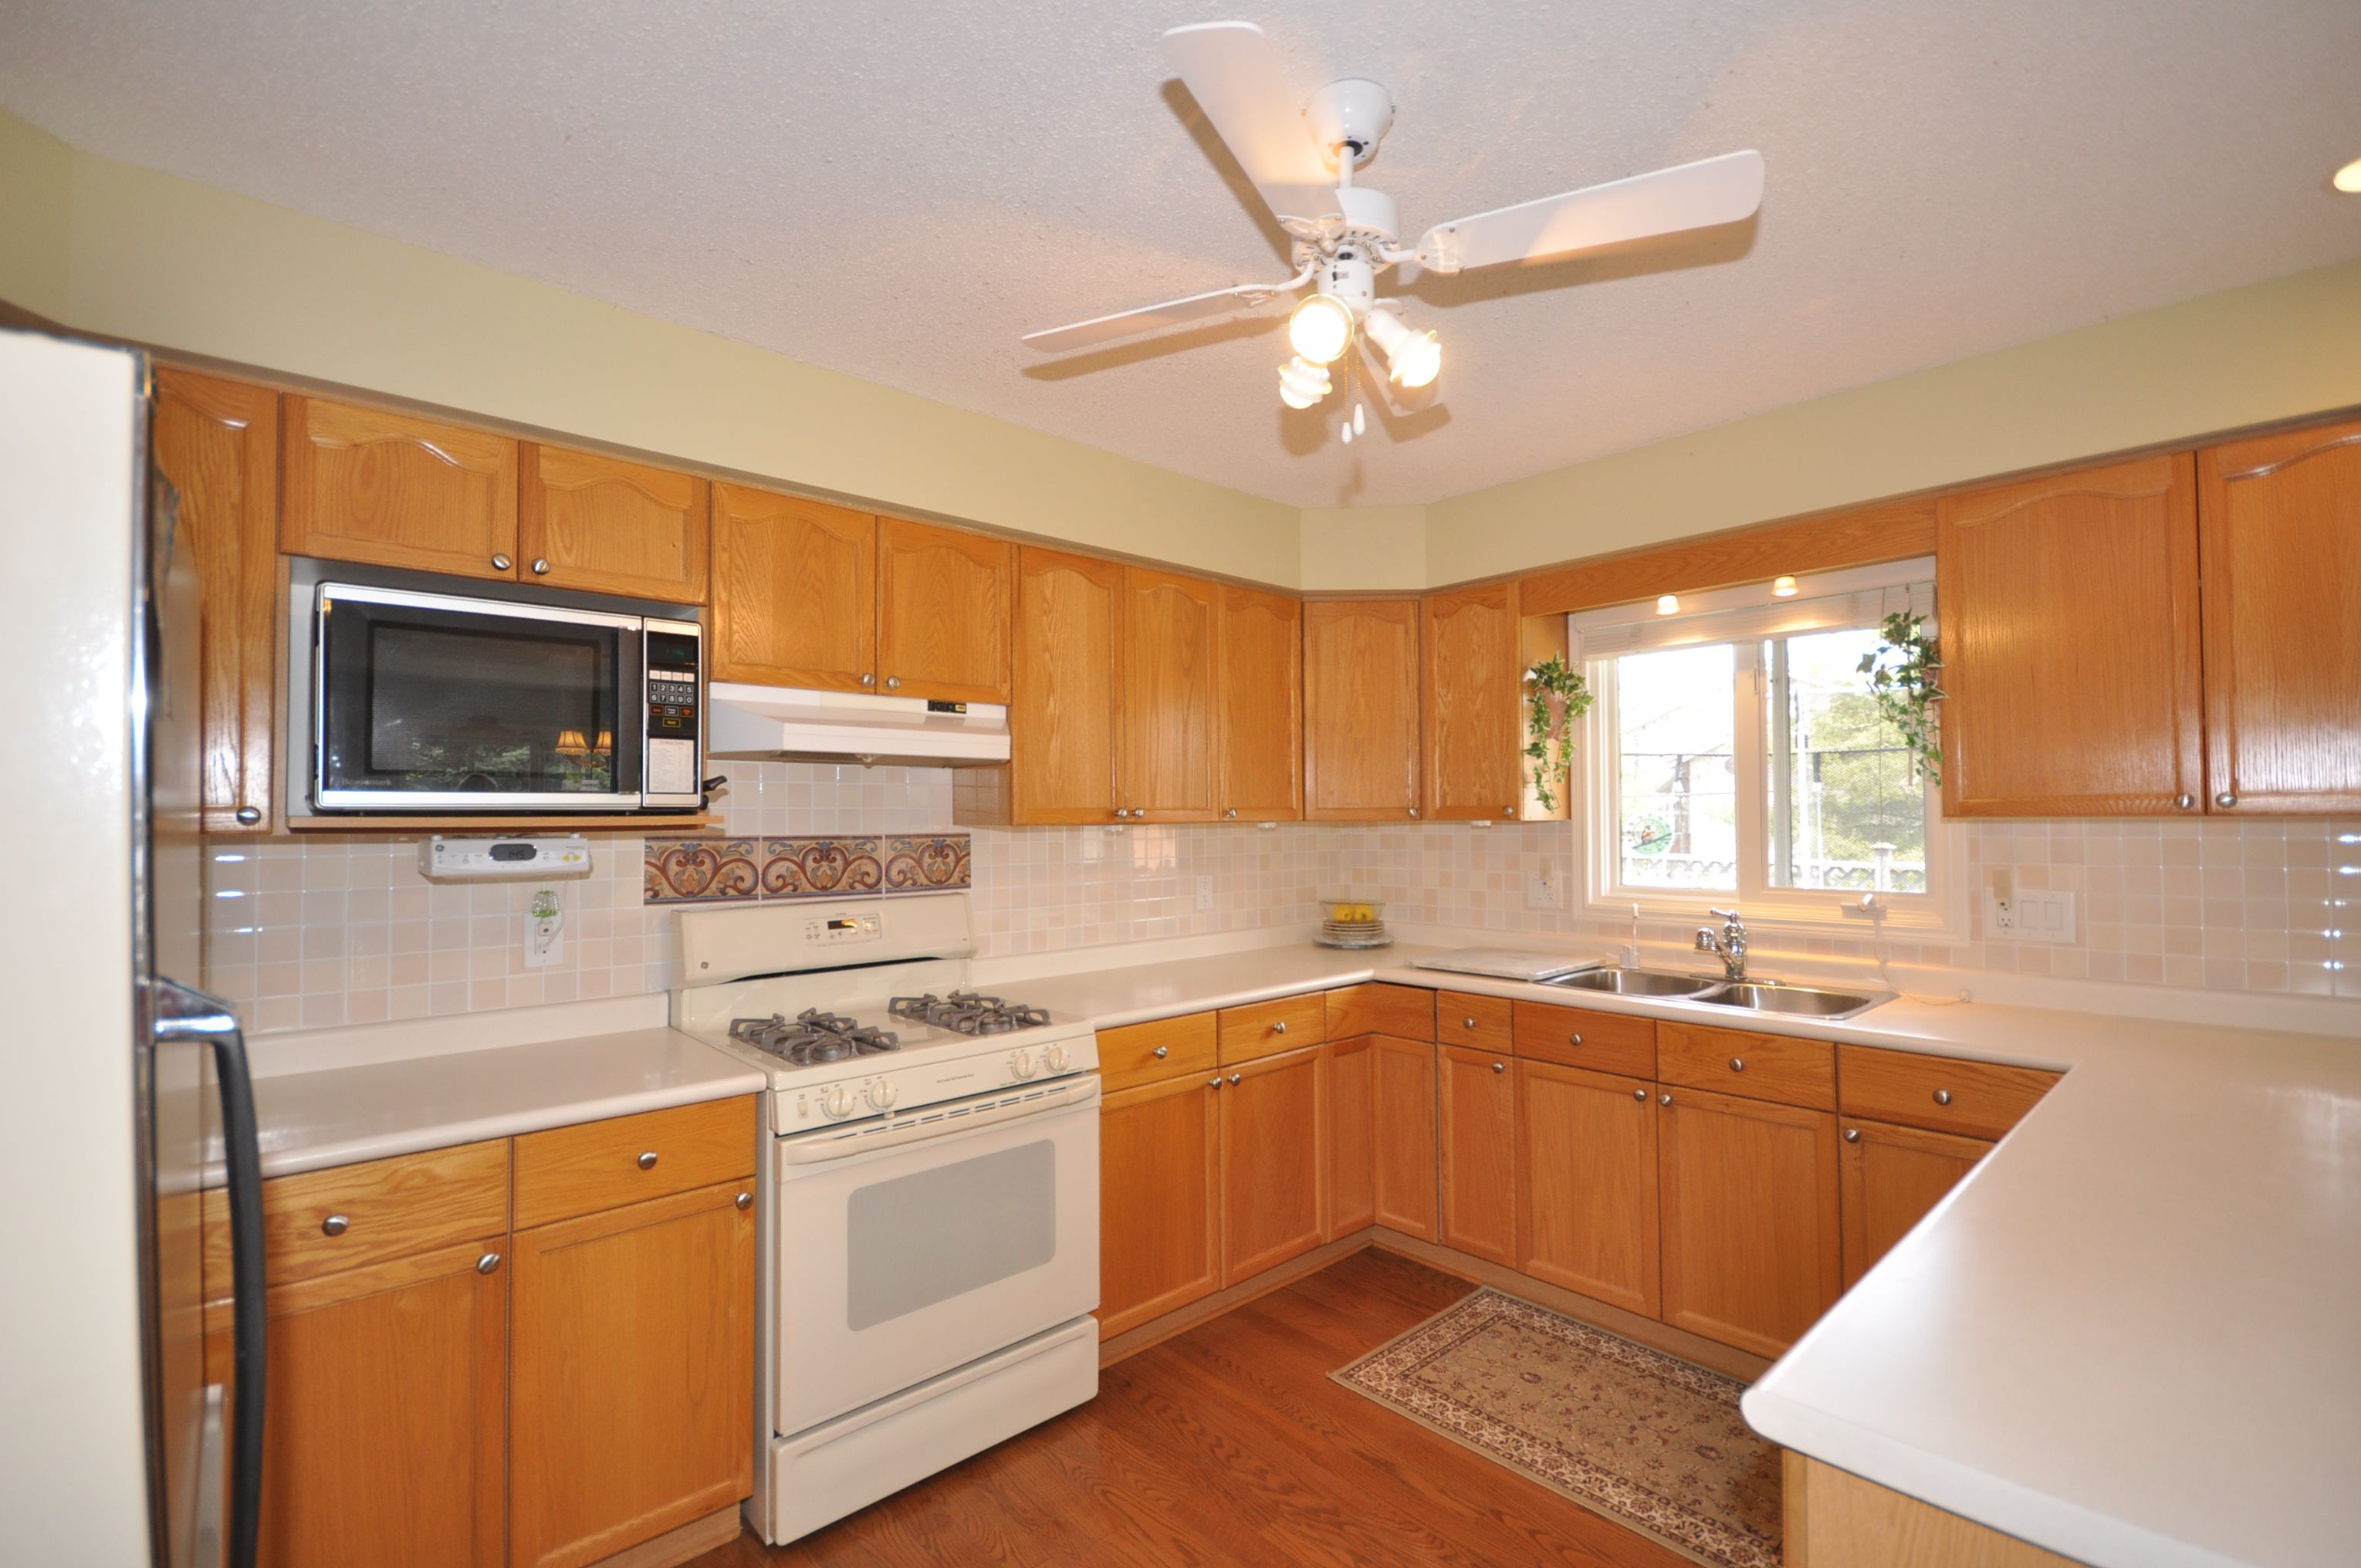 Spacious updated kitchen